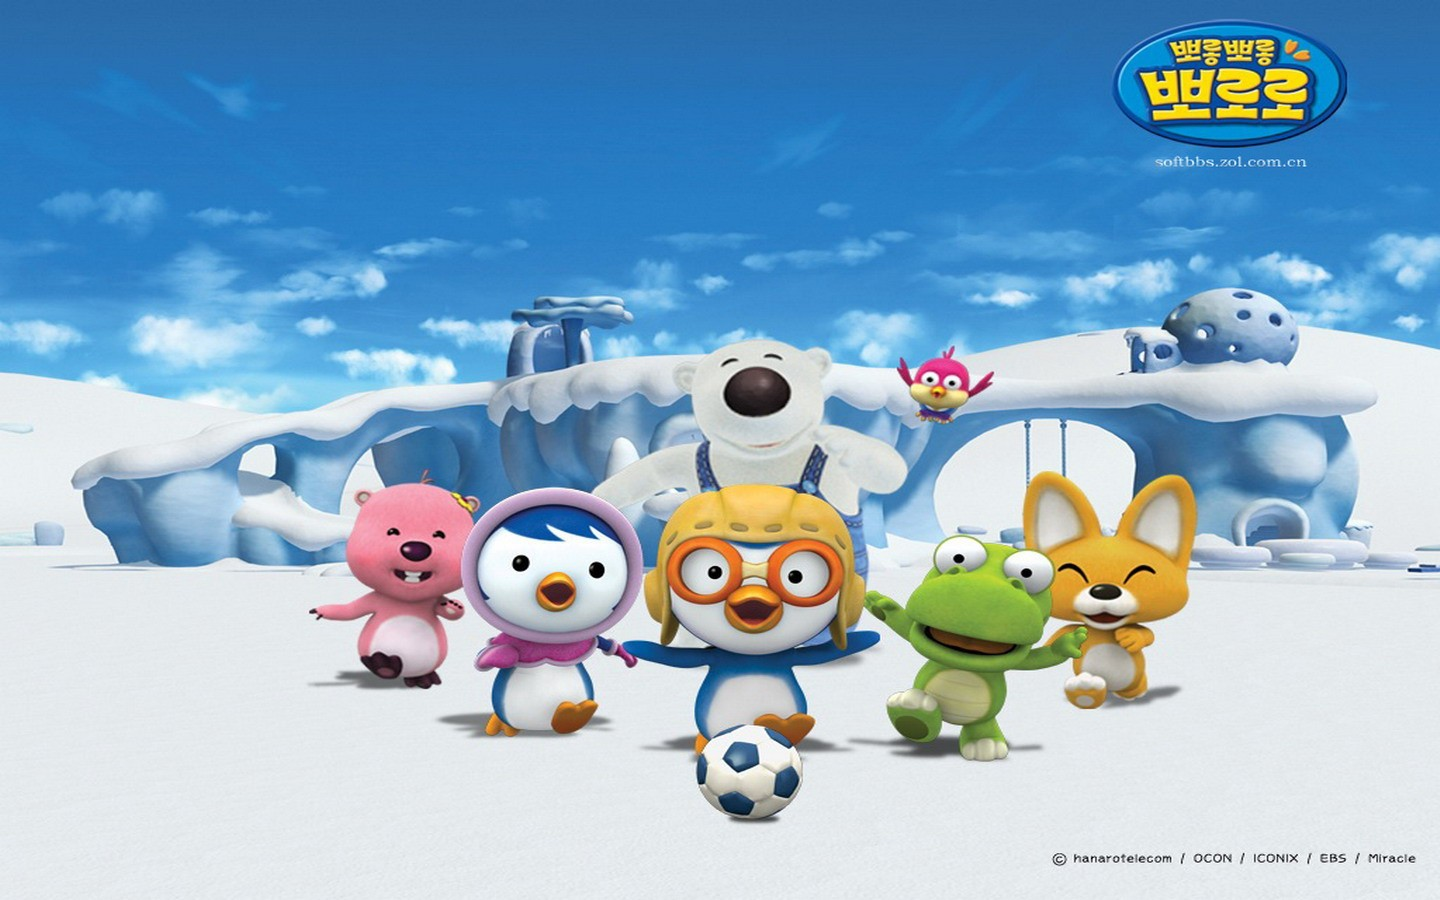 Pororo cartoon wallpapers 12 1440x900 wallpaper download pororo pororo cartoon wallpapers 12 1440x900 altavistaventures Image collections